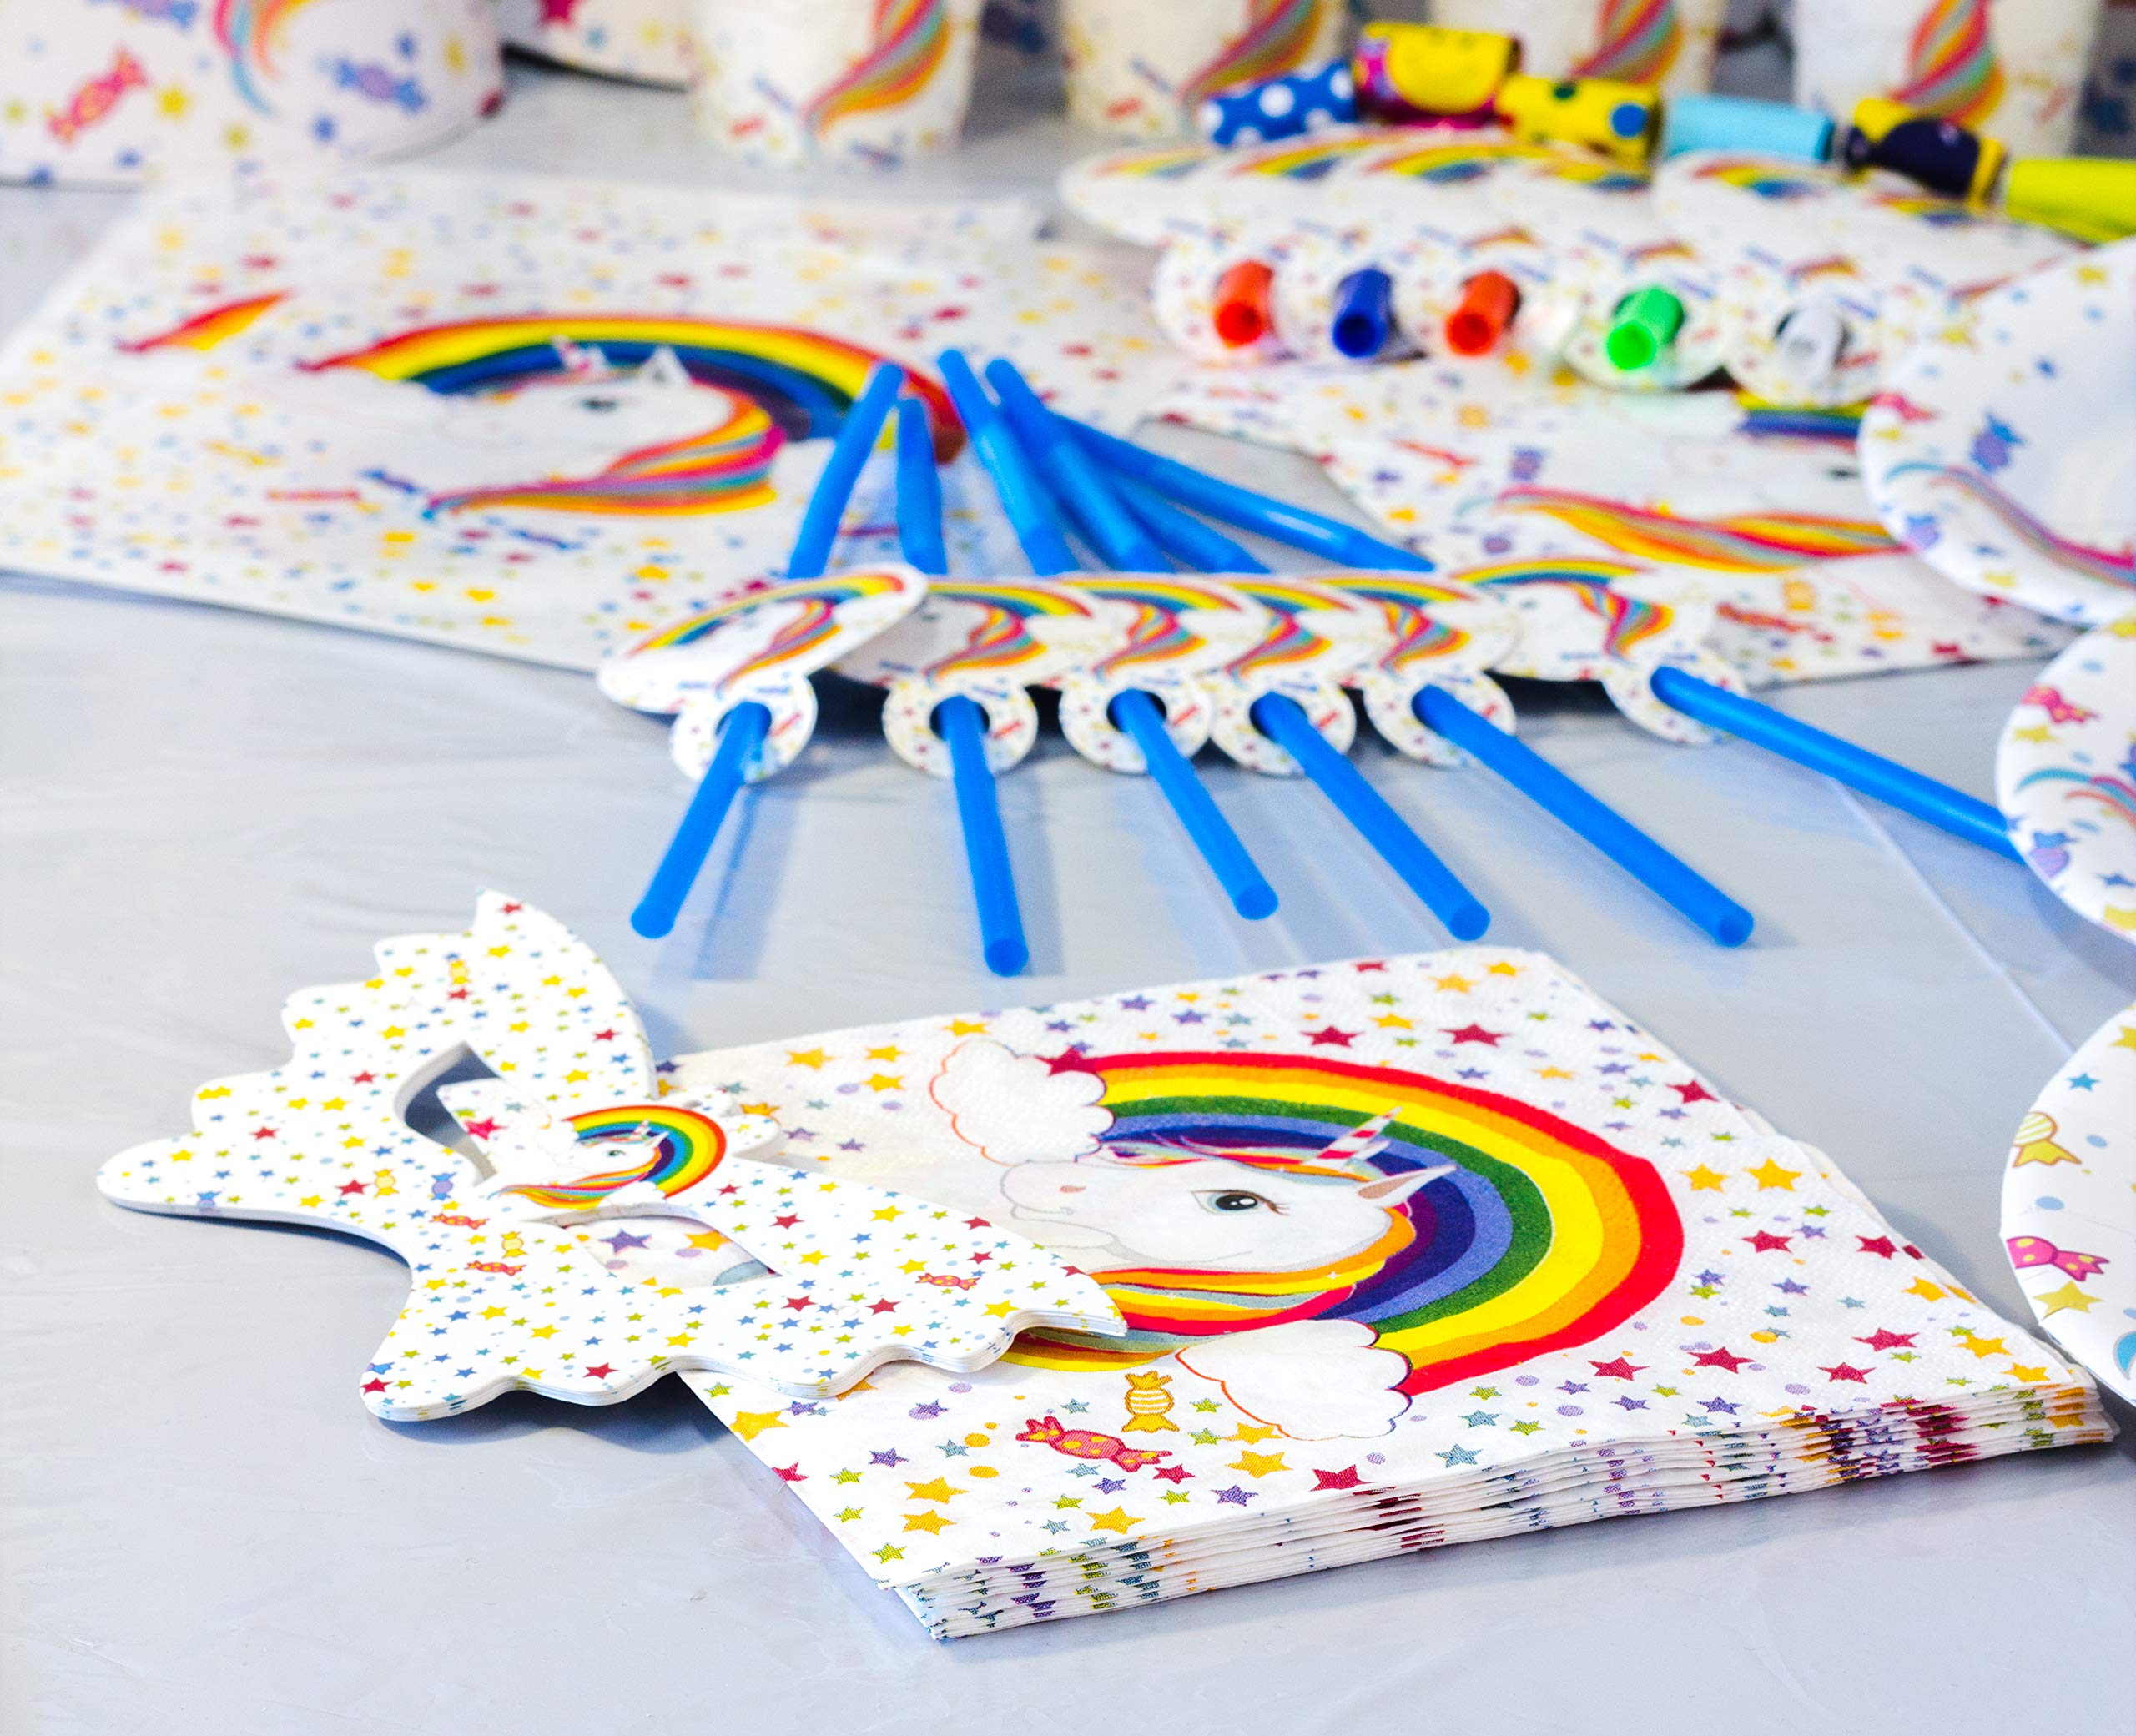 Sigmy Unicorn Party Supplies - (152 PCS)  All-in-One Rainbow Set: Plates, Utensils and Decorations Pack, Serves 10 People. Includes Banner, Hats, Bags, Invitations, Cups, Tablecloth